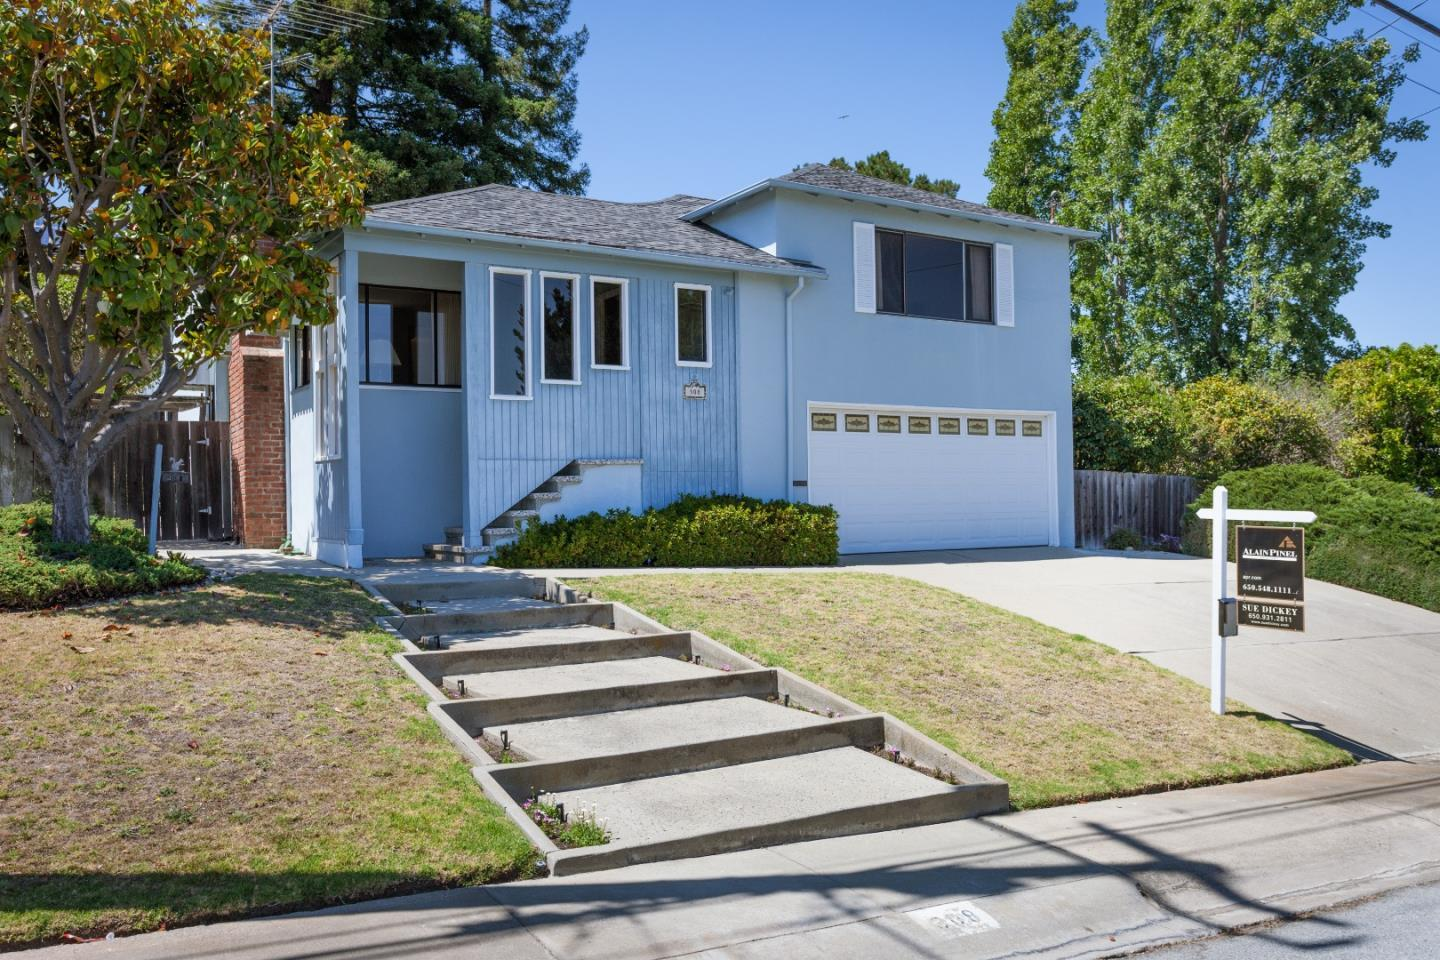 308 Helen Dr, Millbrae, CA 94030 - Estimate and Home Details | Trulia